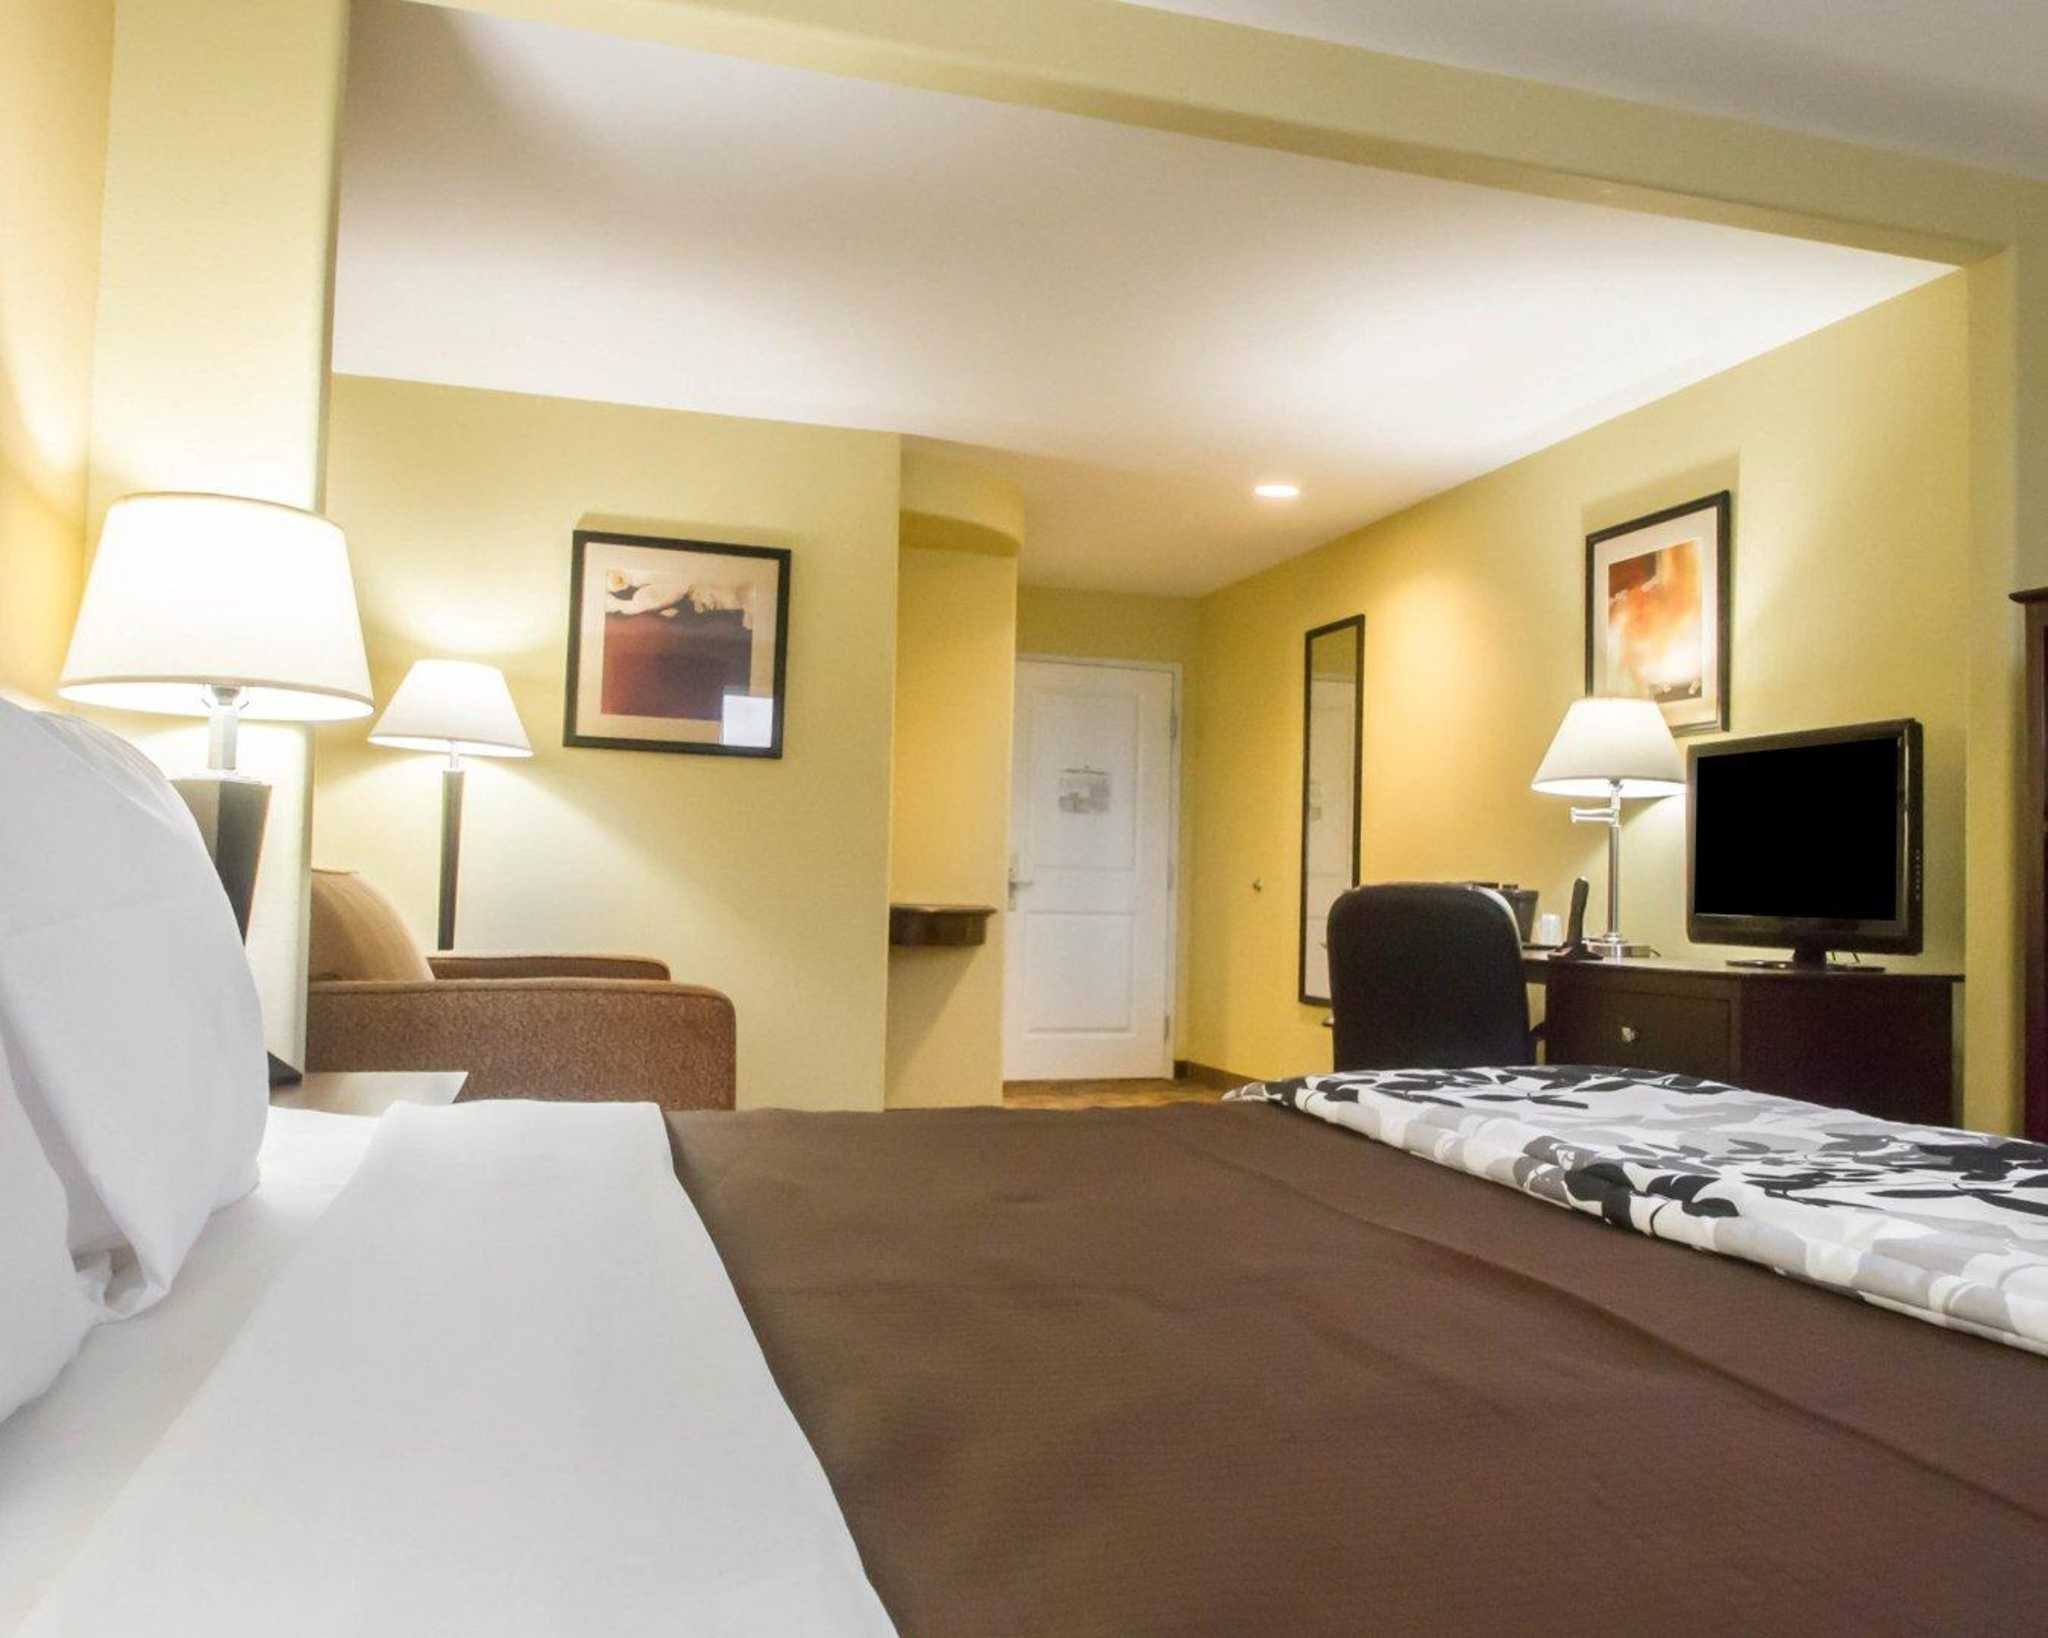 Local Hotels With Great Room Service In Louisiana